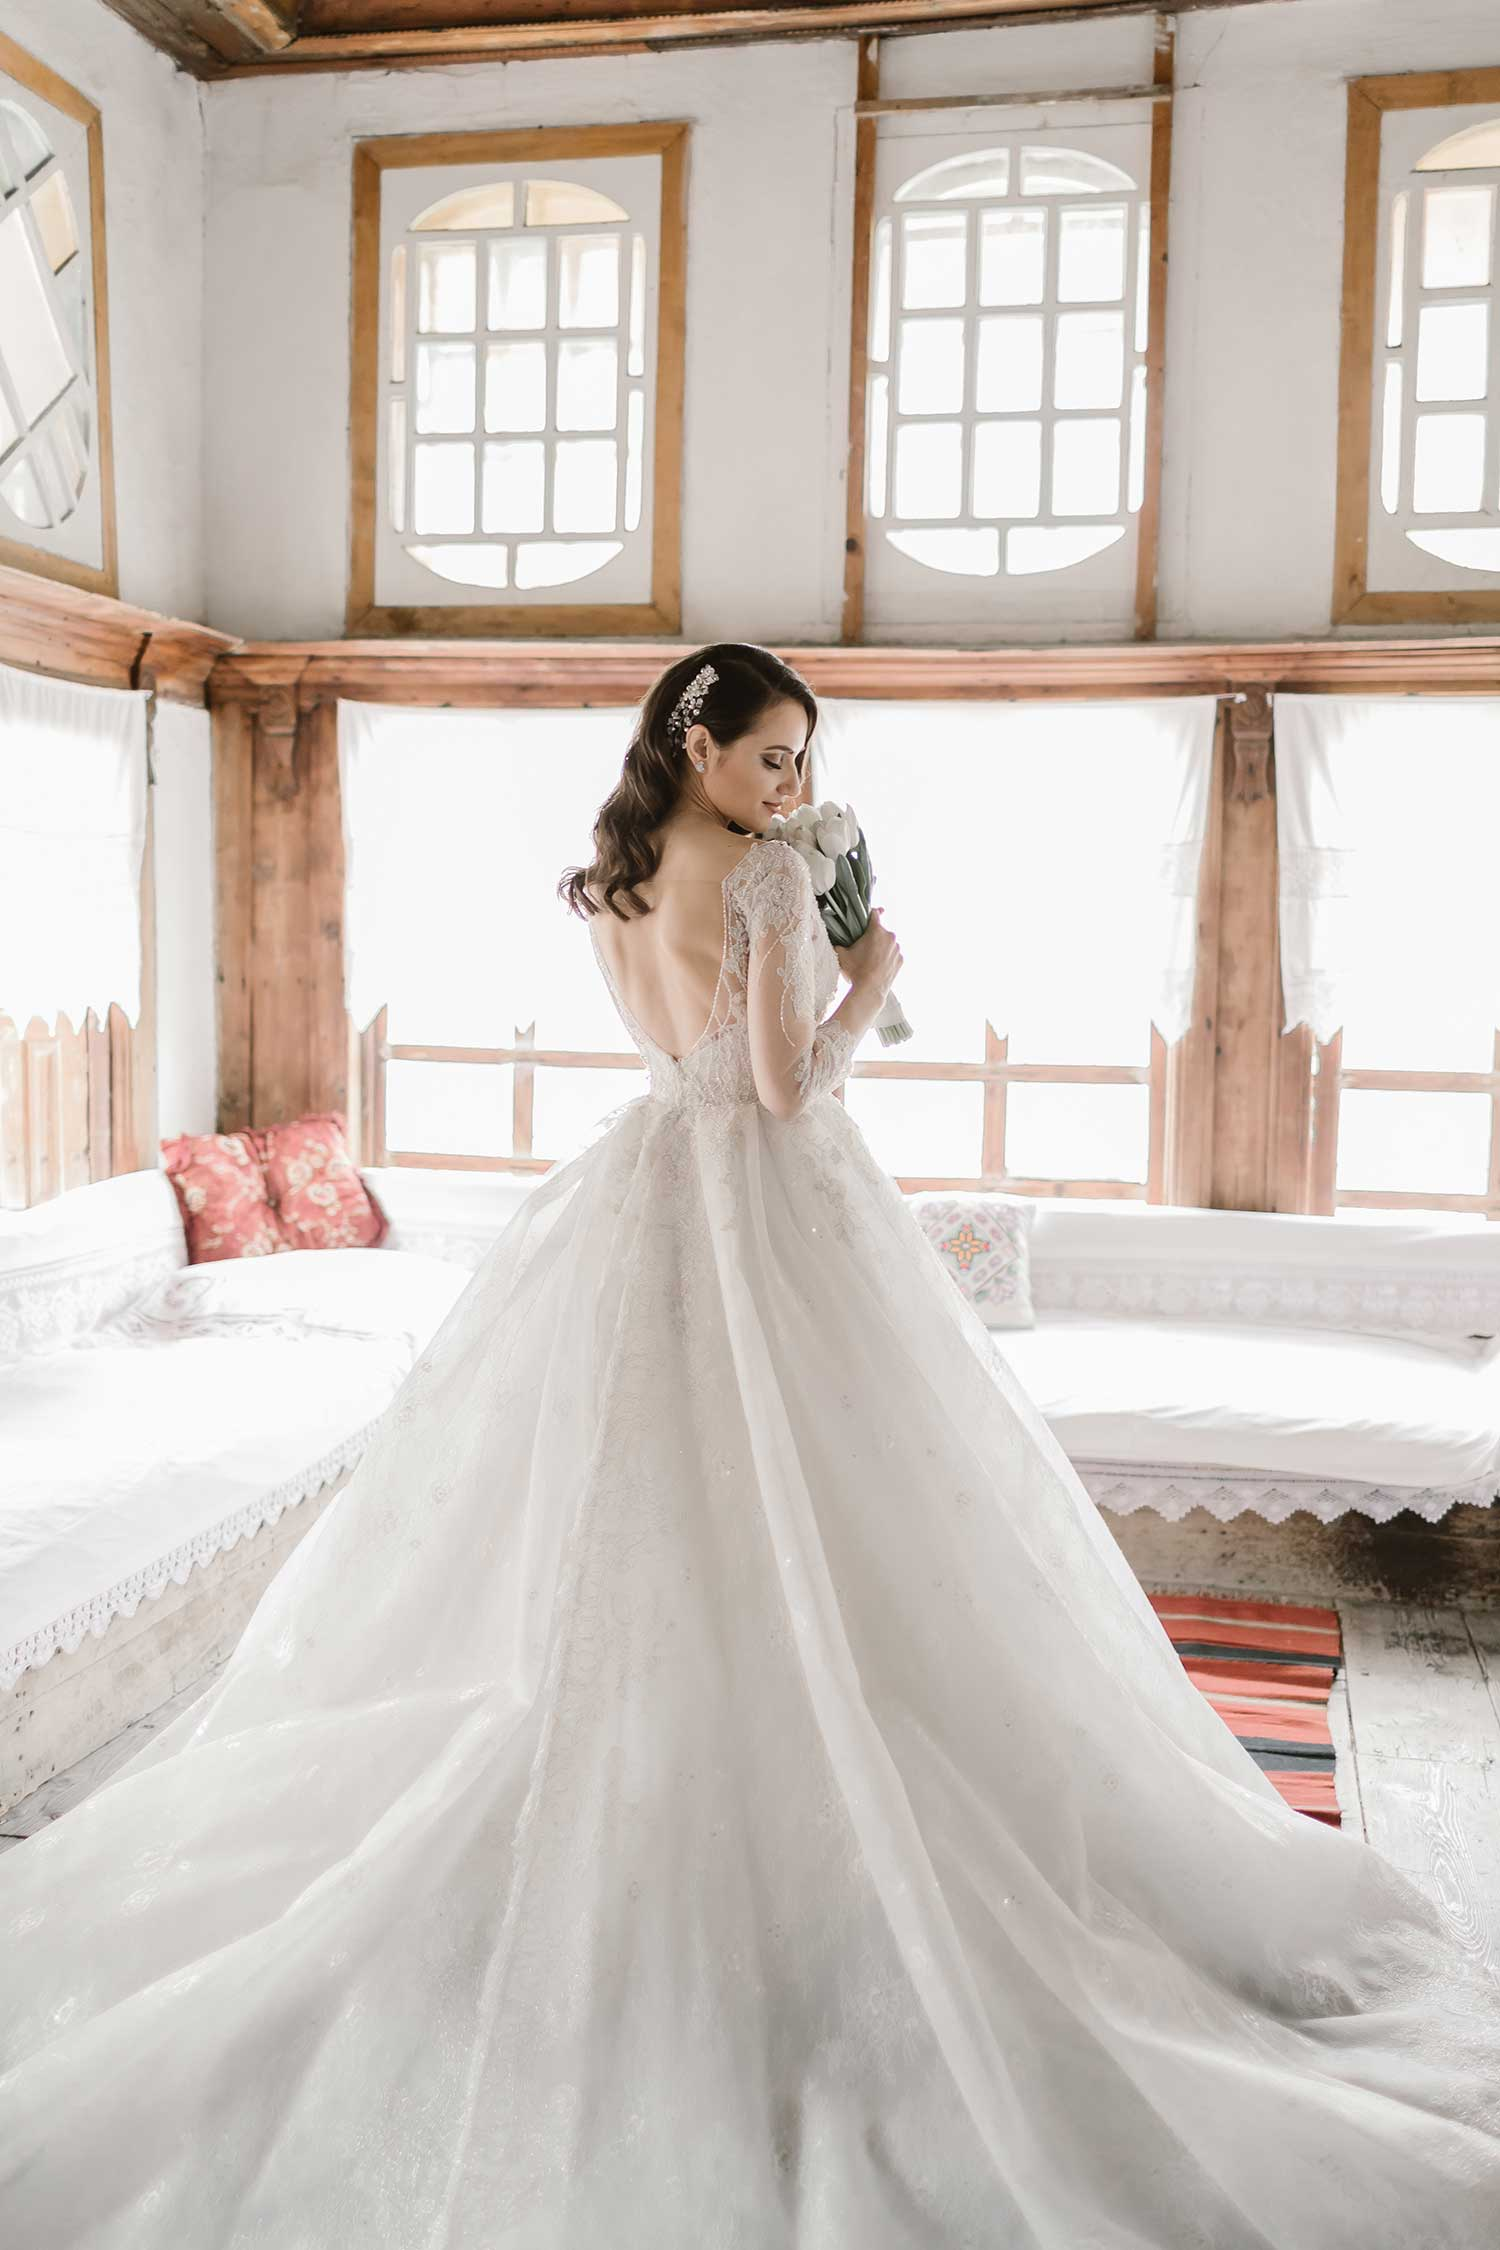 Stunning wedding dress in complete harmony with the interior design of the house